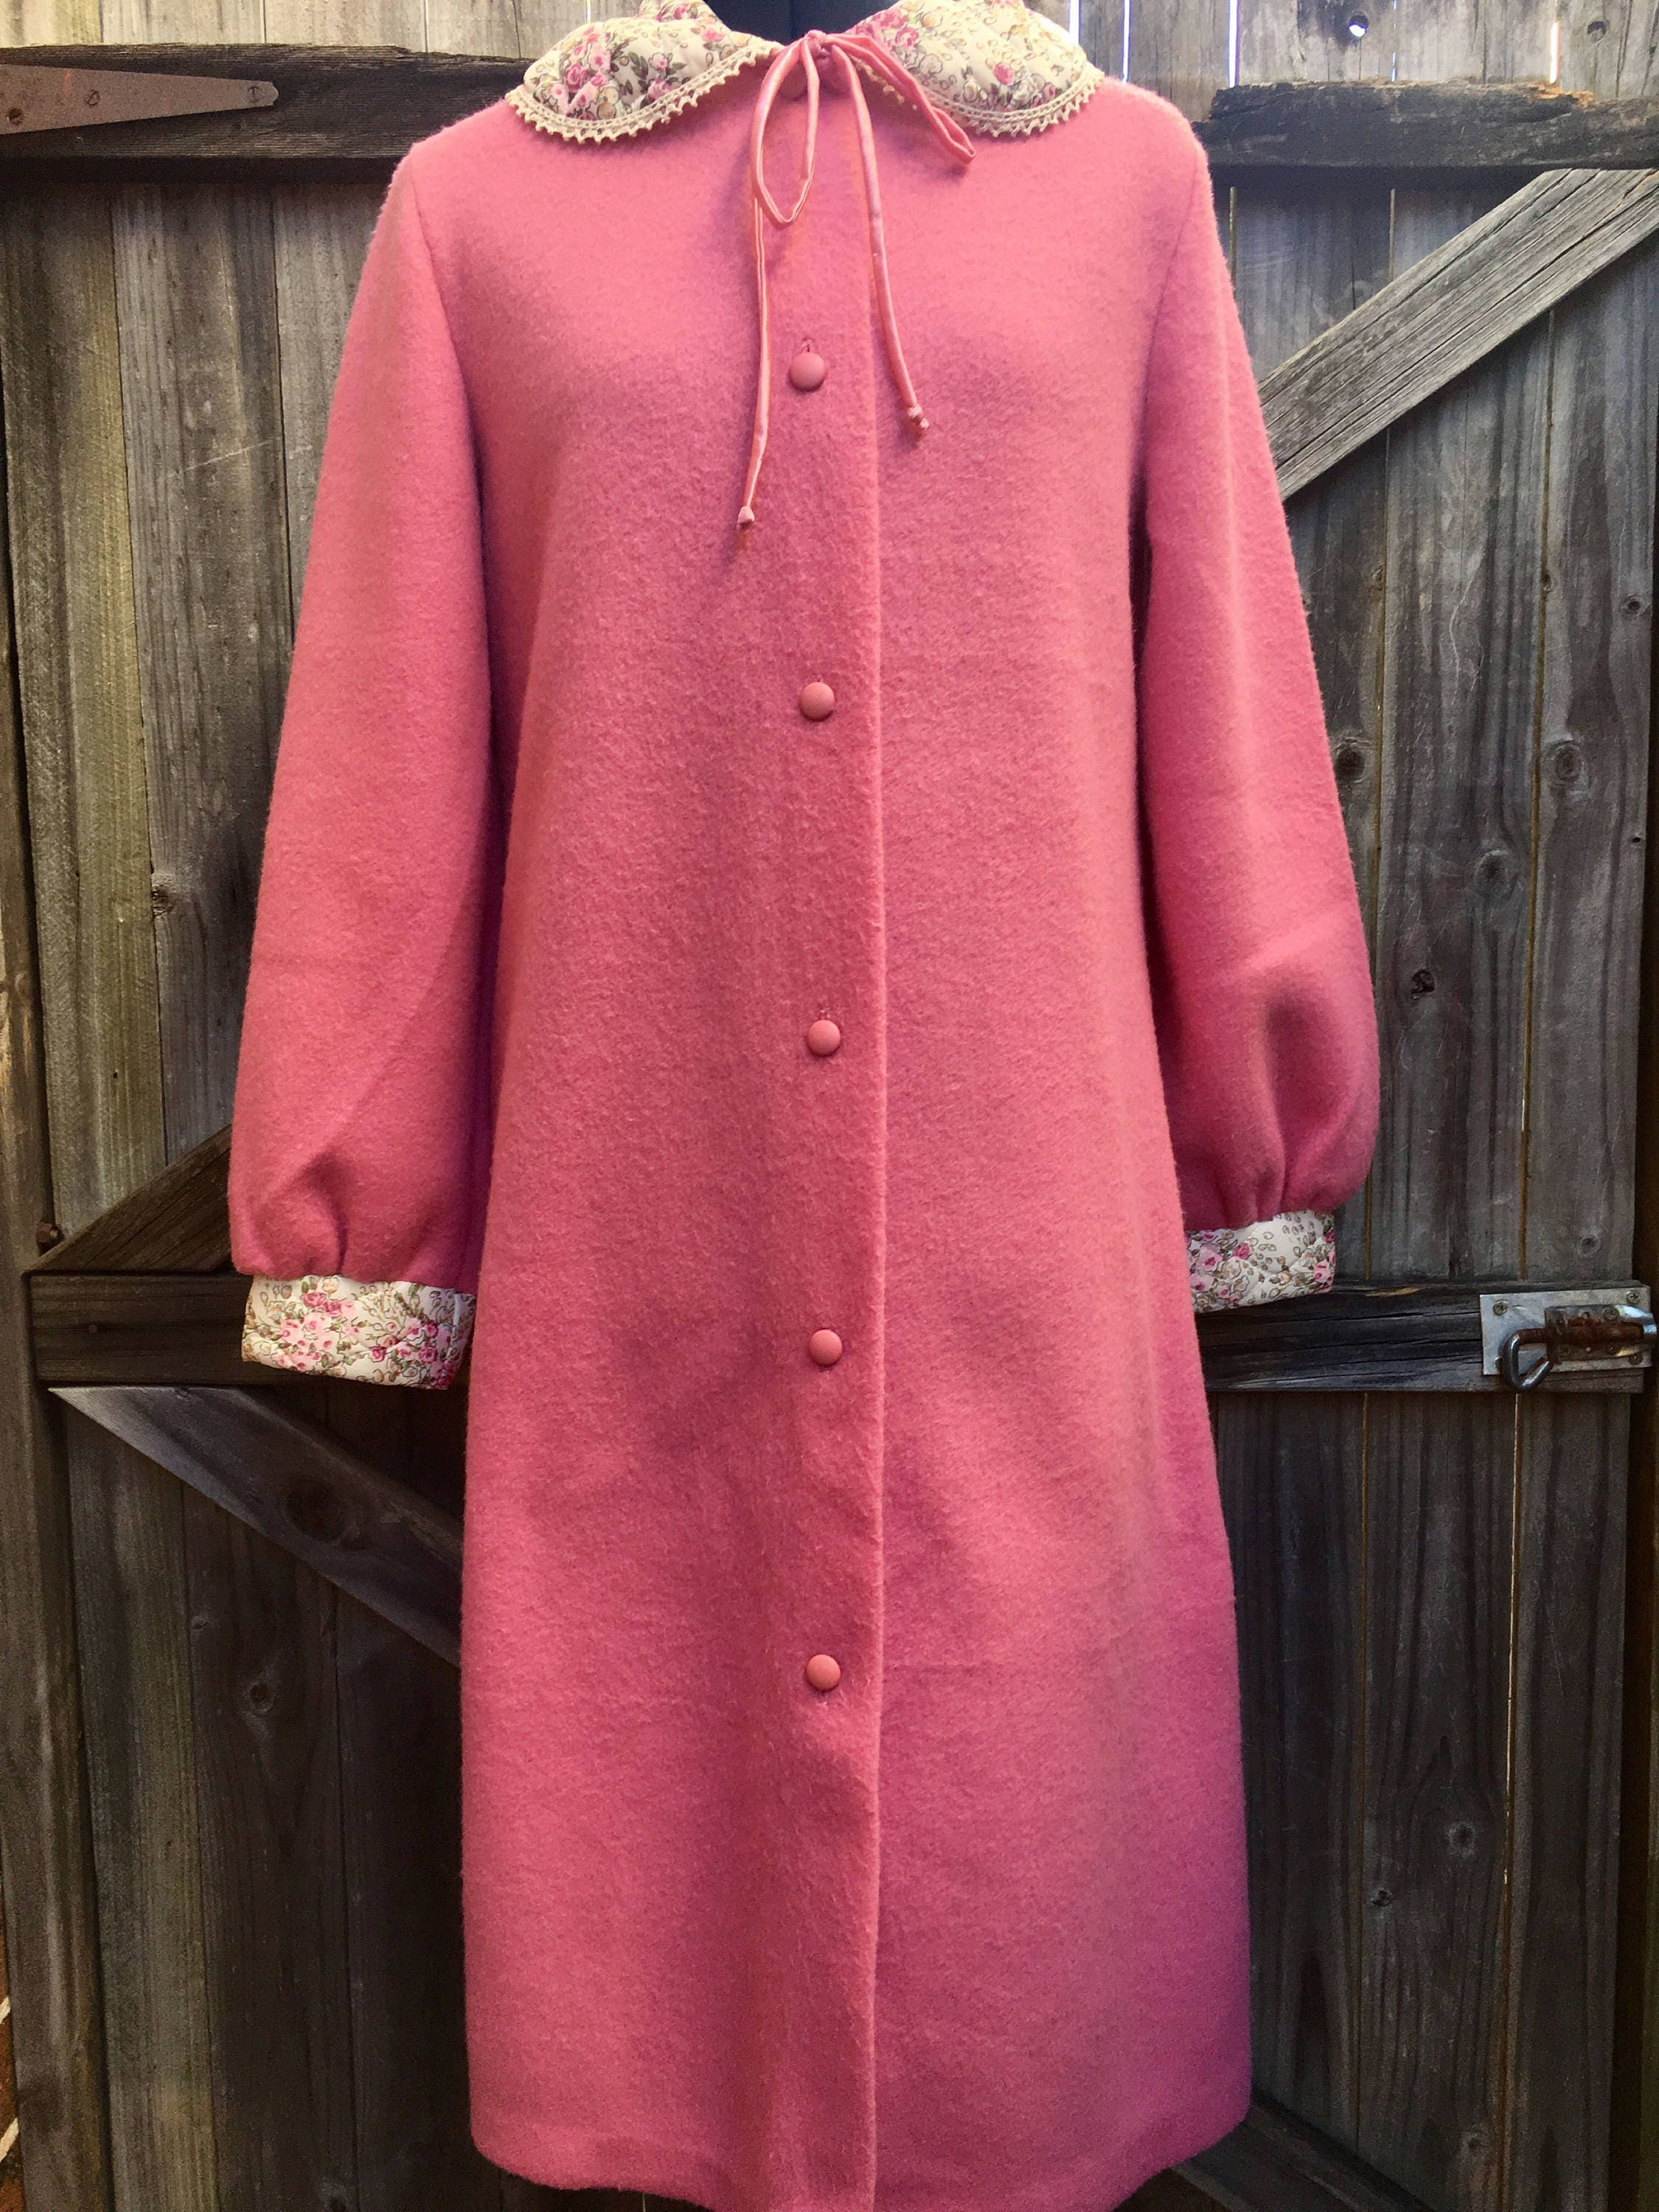 Modern Giovanni Dressing Gowns Embellishment - Wedding and flowers ...